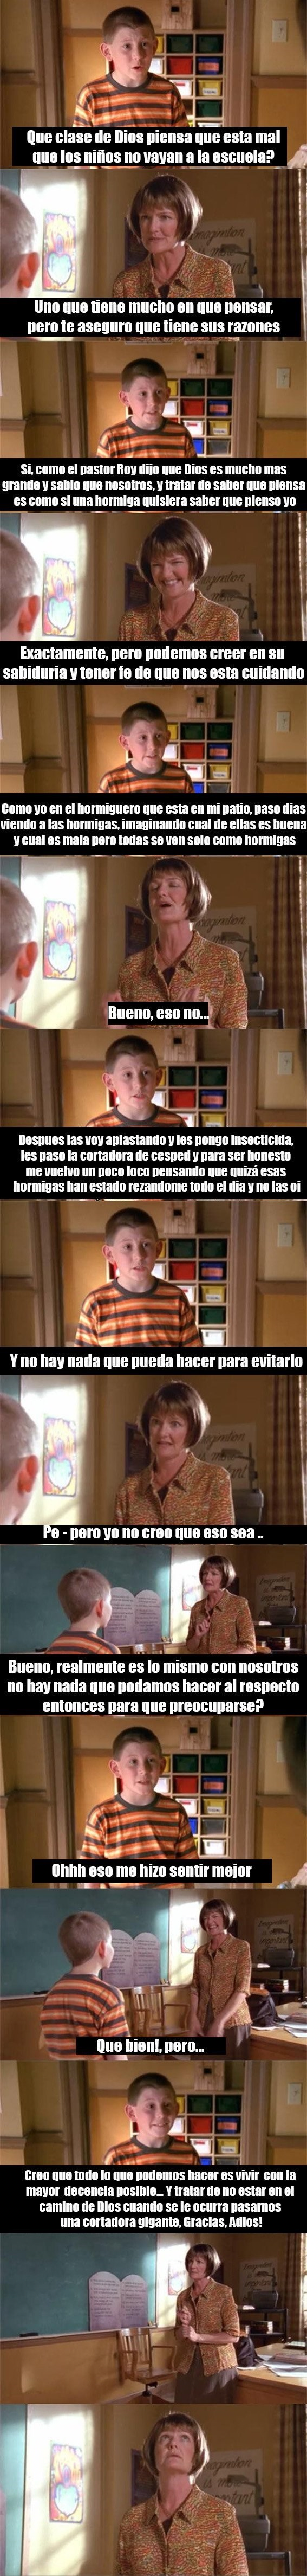 Dewey de malcolm in the middle analiza lo que es ser dios